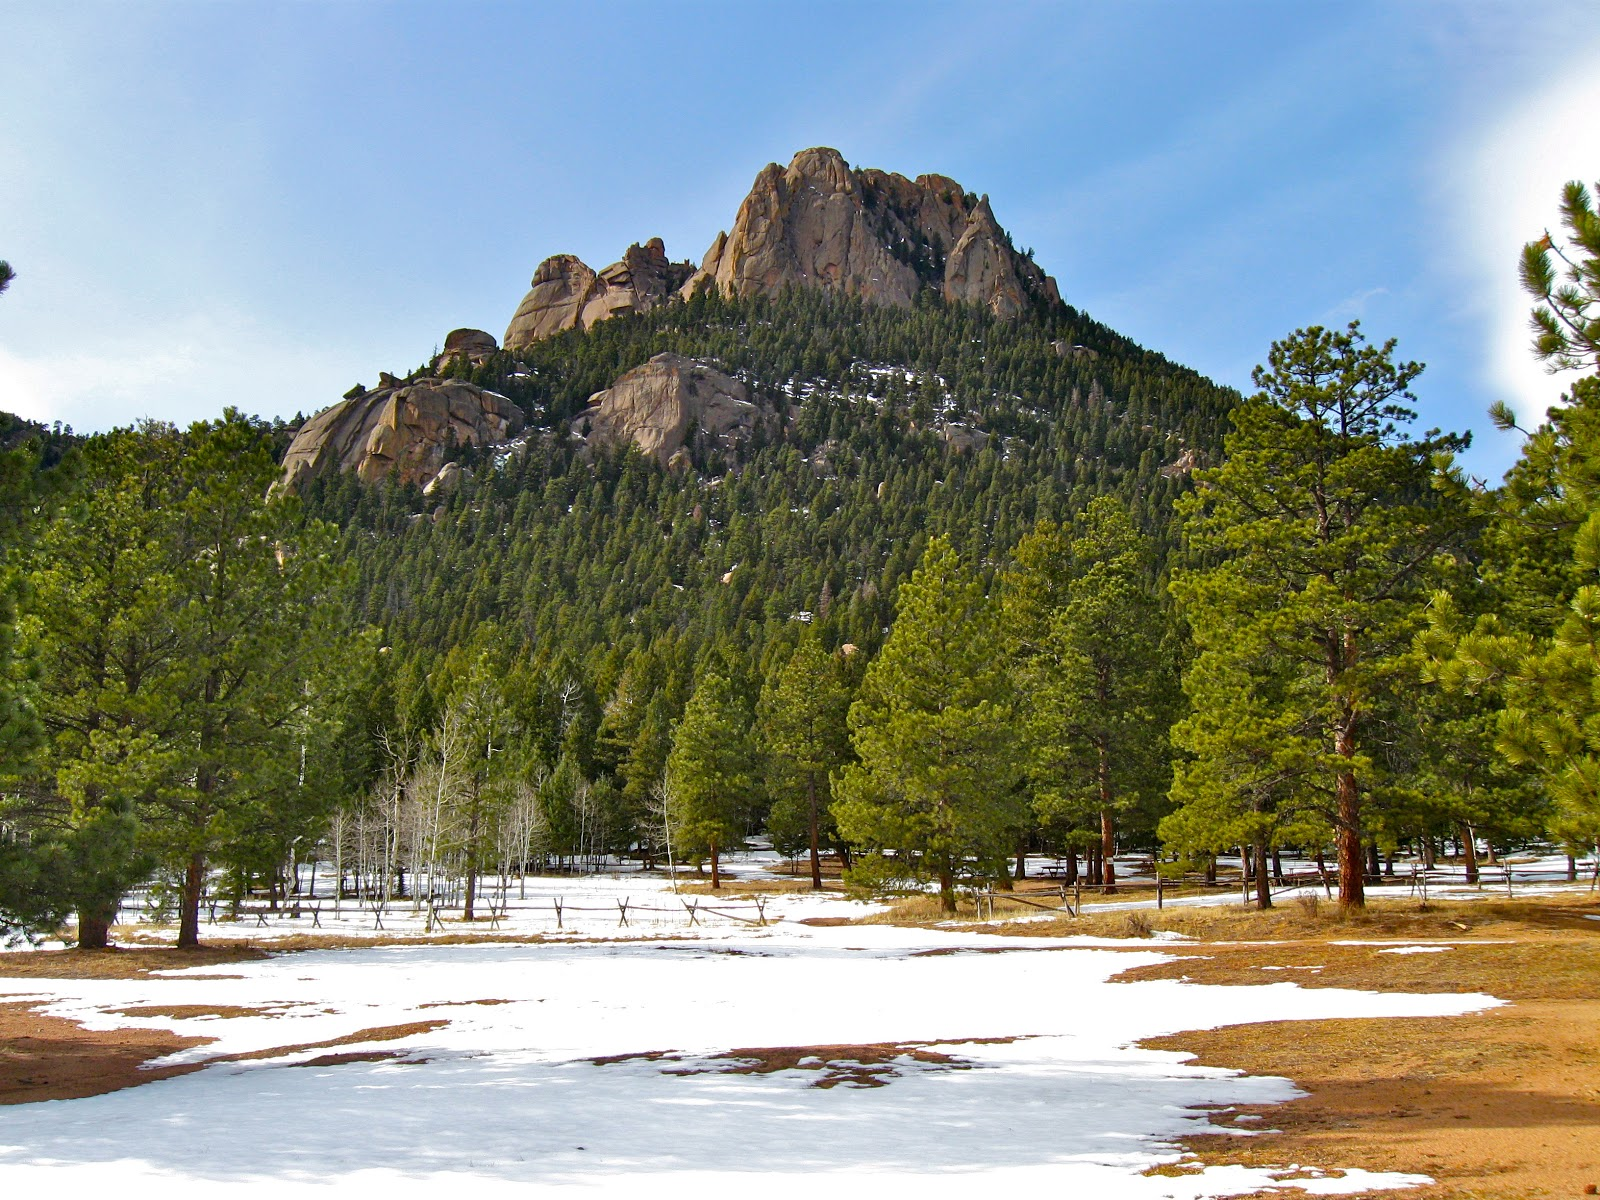 Town And Country Ad >> Impression Evergreen: Finding Bigfoot in Bailey, Colorado